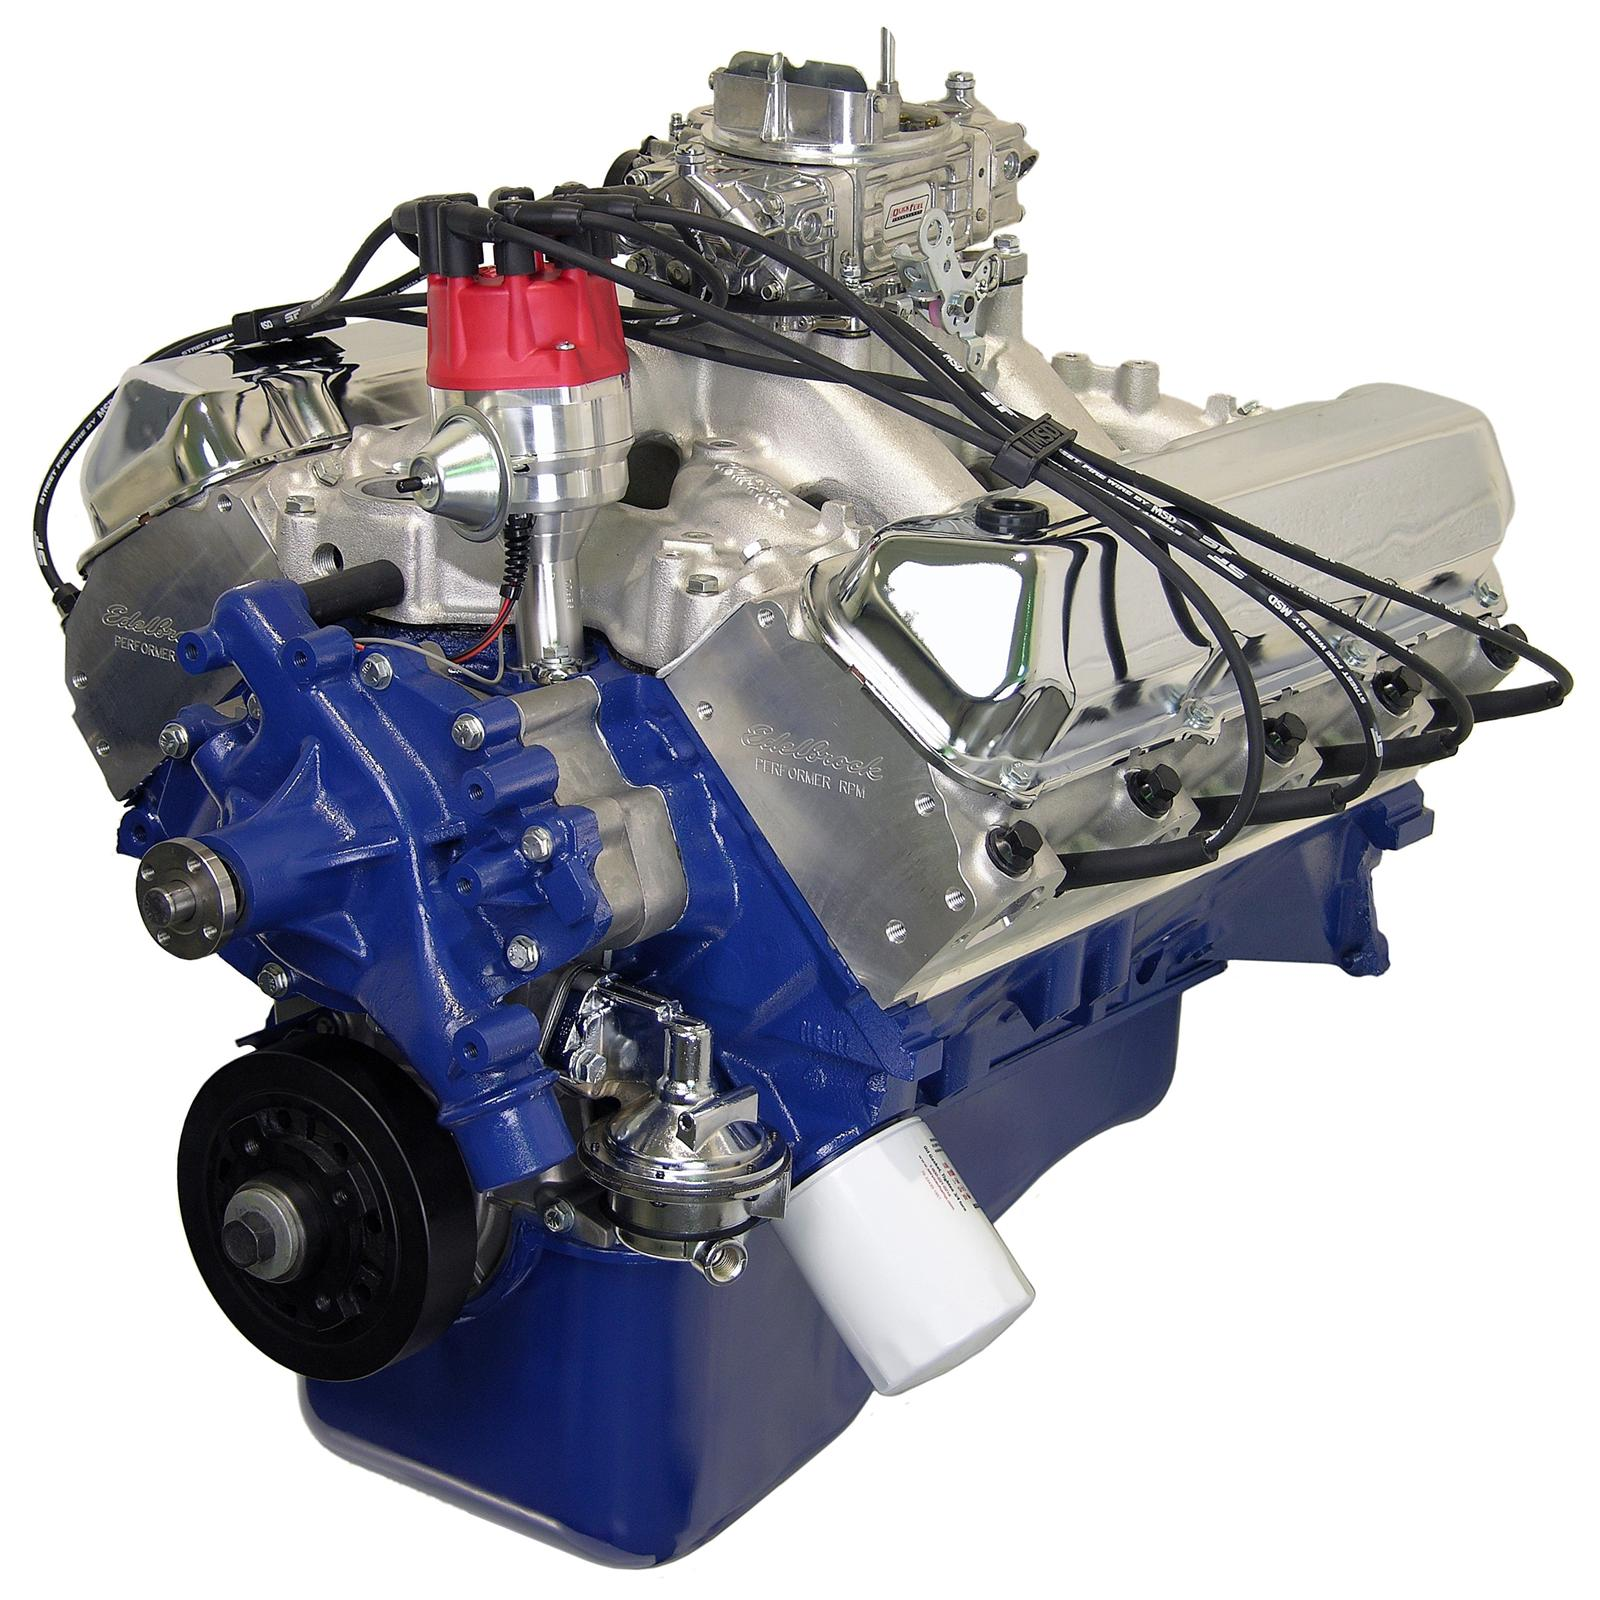 Blue Ovals In Boxes 10 Awesome Ford Crate Engines For Under Your Automotive Wiring Harnesses At Summit Racing Atk High Performance 460 525 Stage 3 Engine